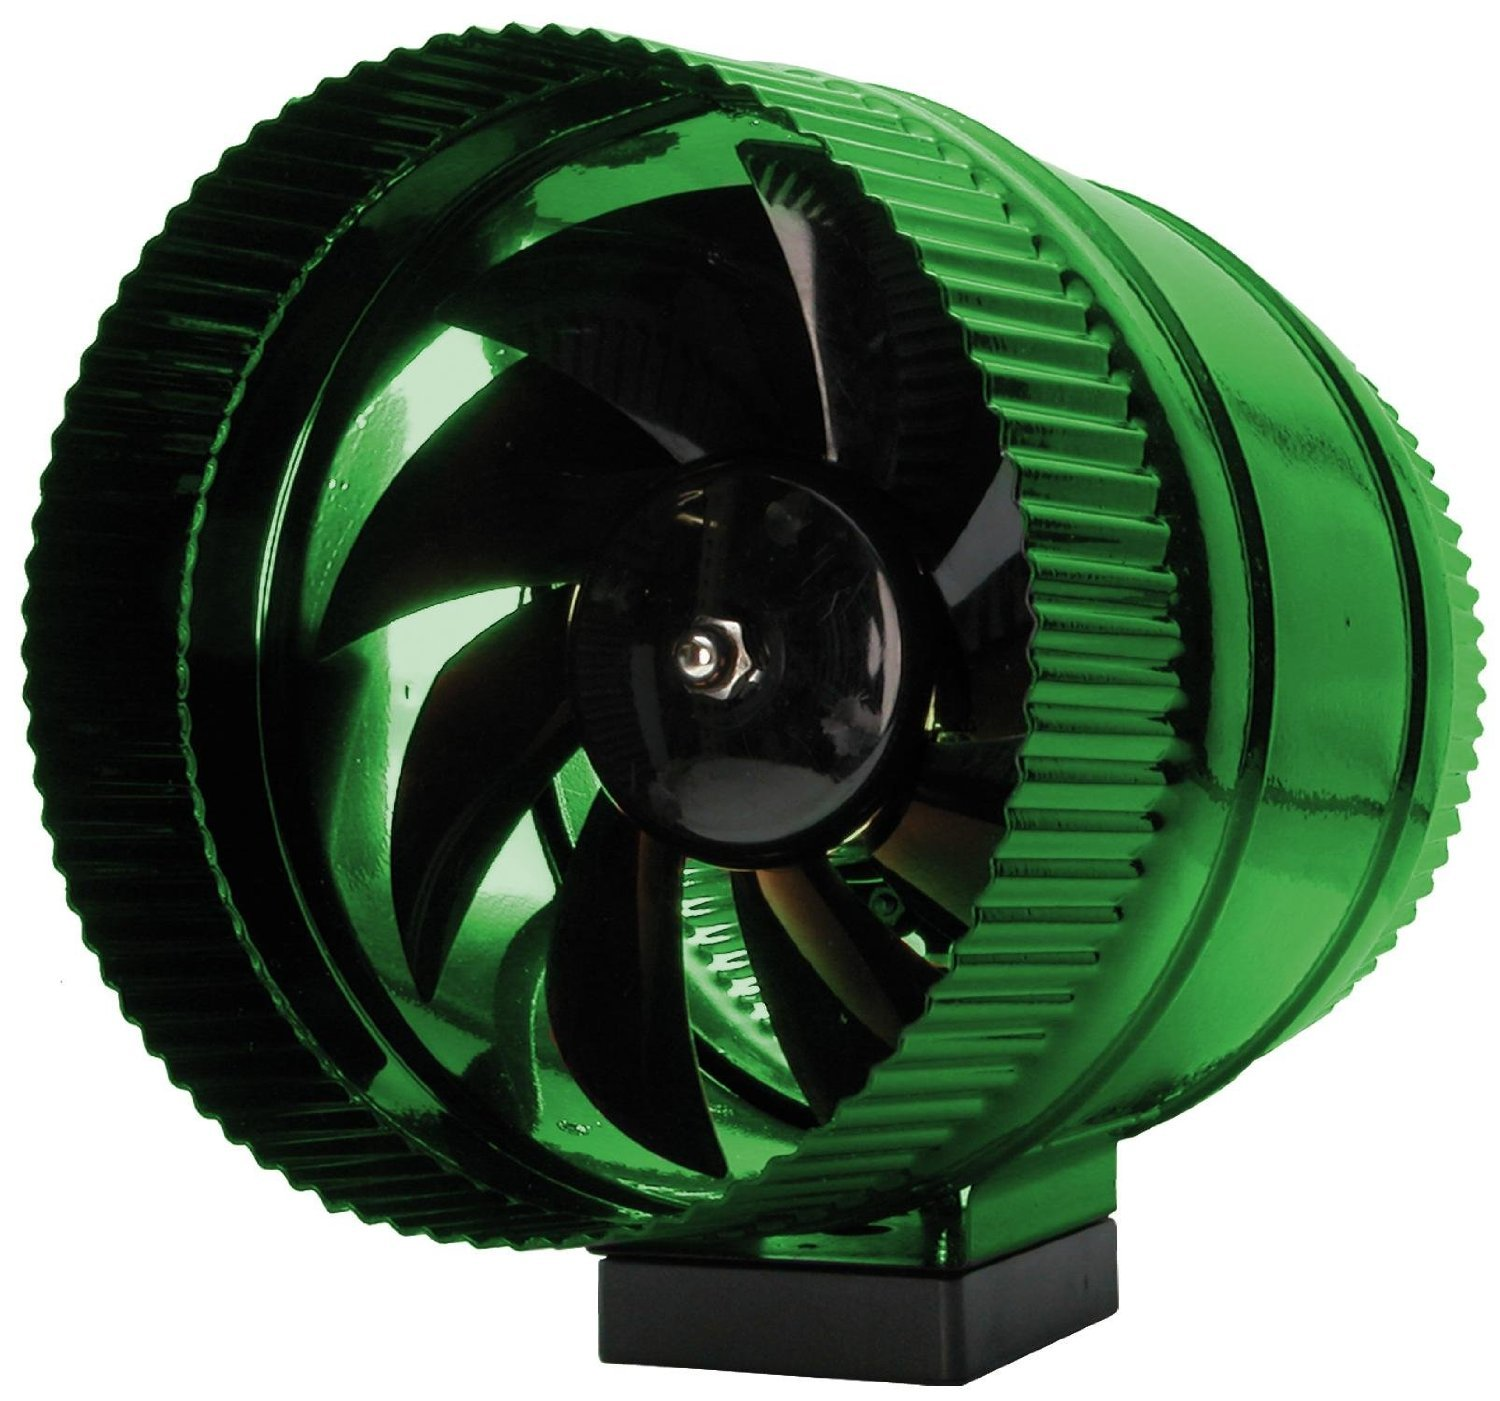 Amazon com   Active Air ACFB8 8 Inch In Line Booster Fan   Built In  Household Ventilation Fans   Garden   Outdoor. Amazon com   Active Air ACFB8 8 Inch In Line Booster Fan   Built